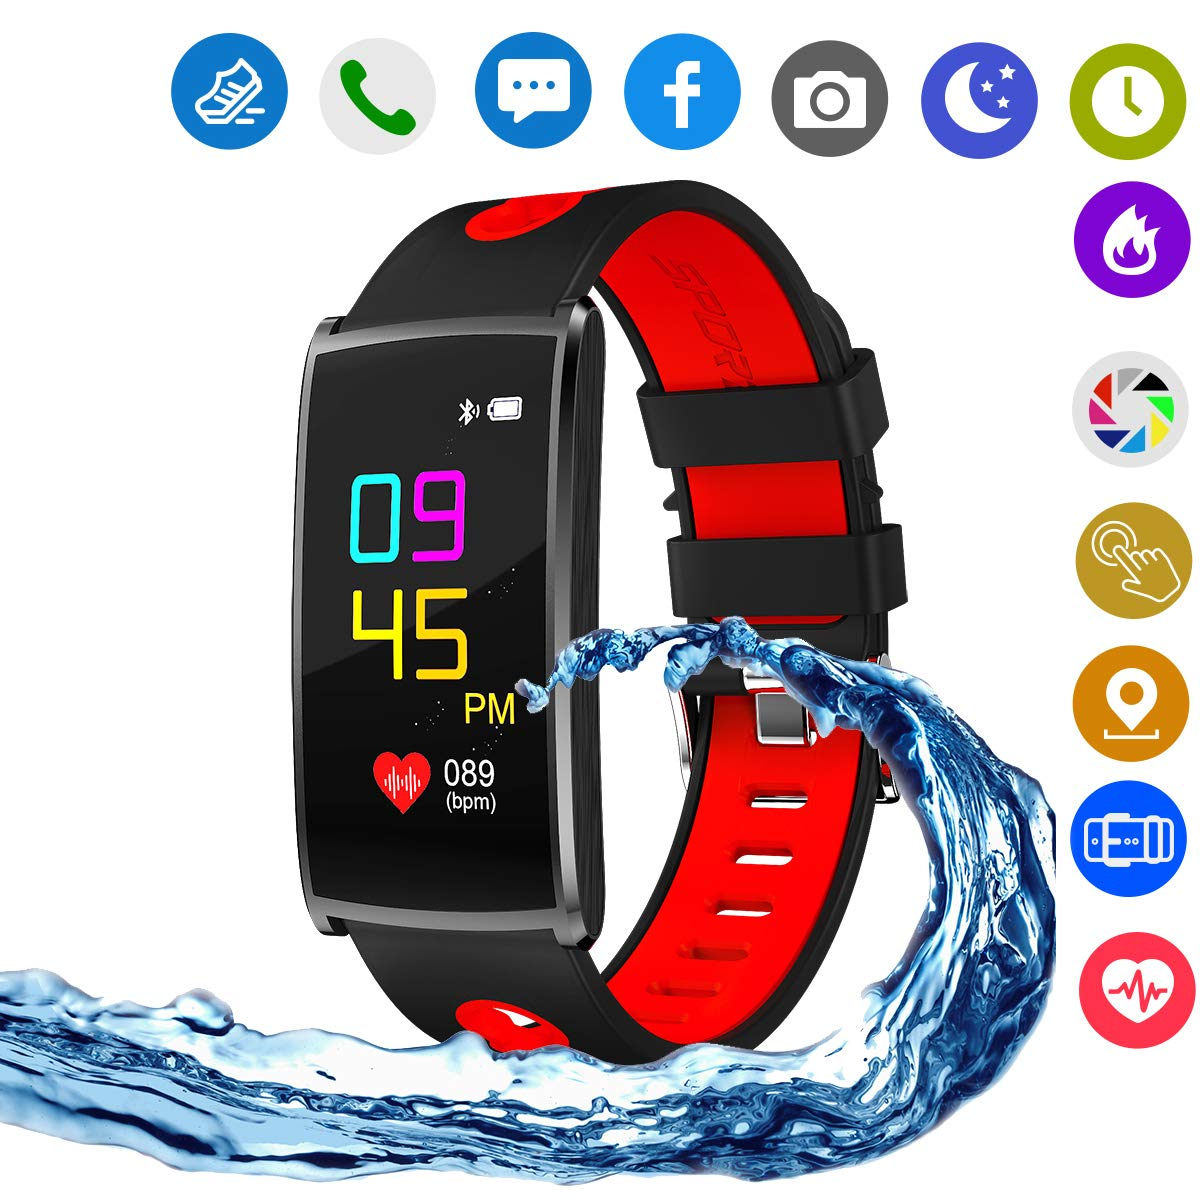 Hangang Smart Watch,Blue Tooth Touch Screen IP67 Life Waterproof Function/Sports Fitness Tracker for IOS and Android Phones. (red)